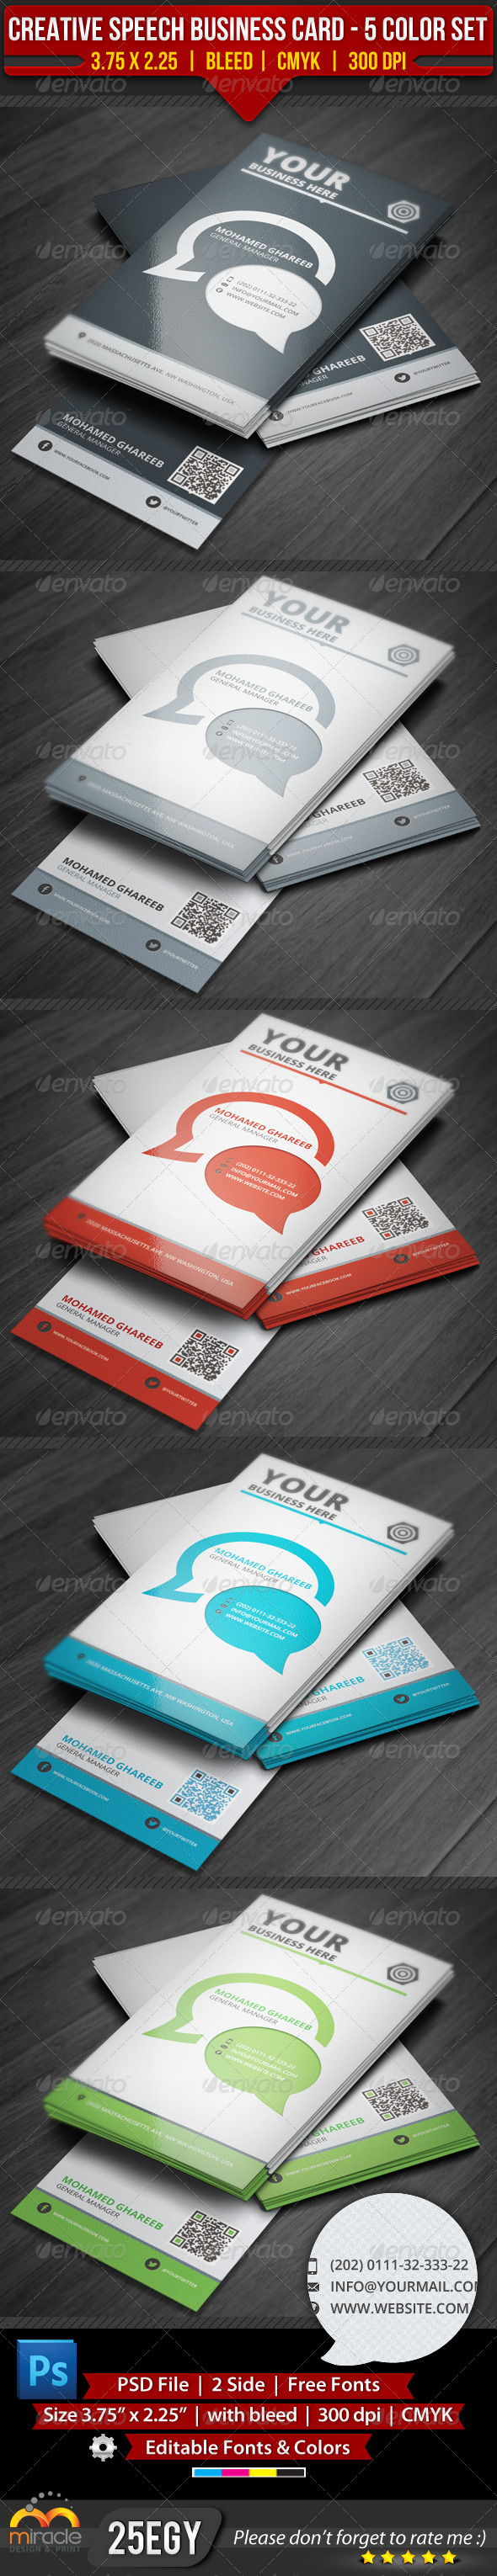 GraphicRiver Creative Speech Business Card 5 Color Set 3738554